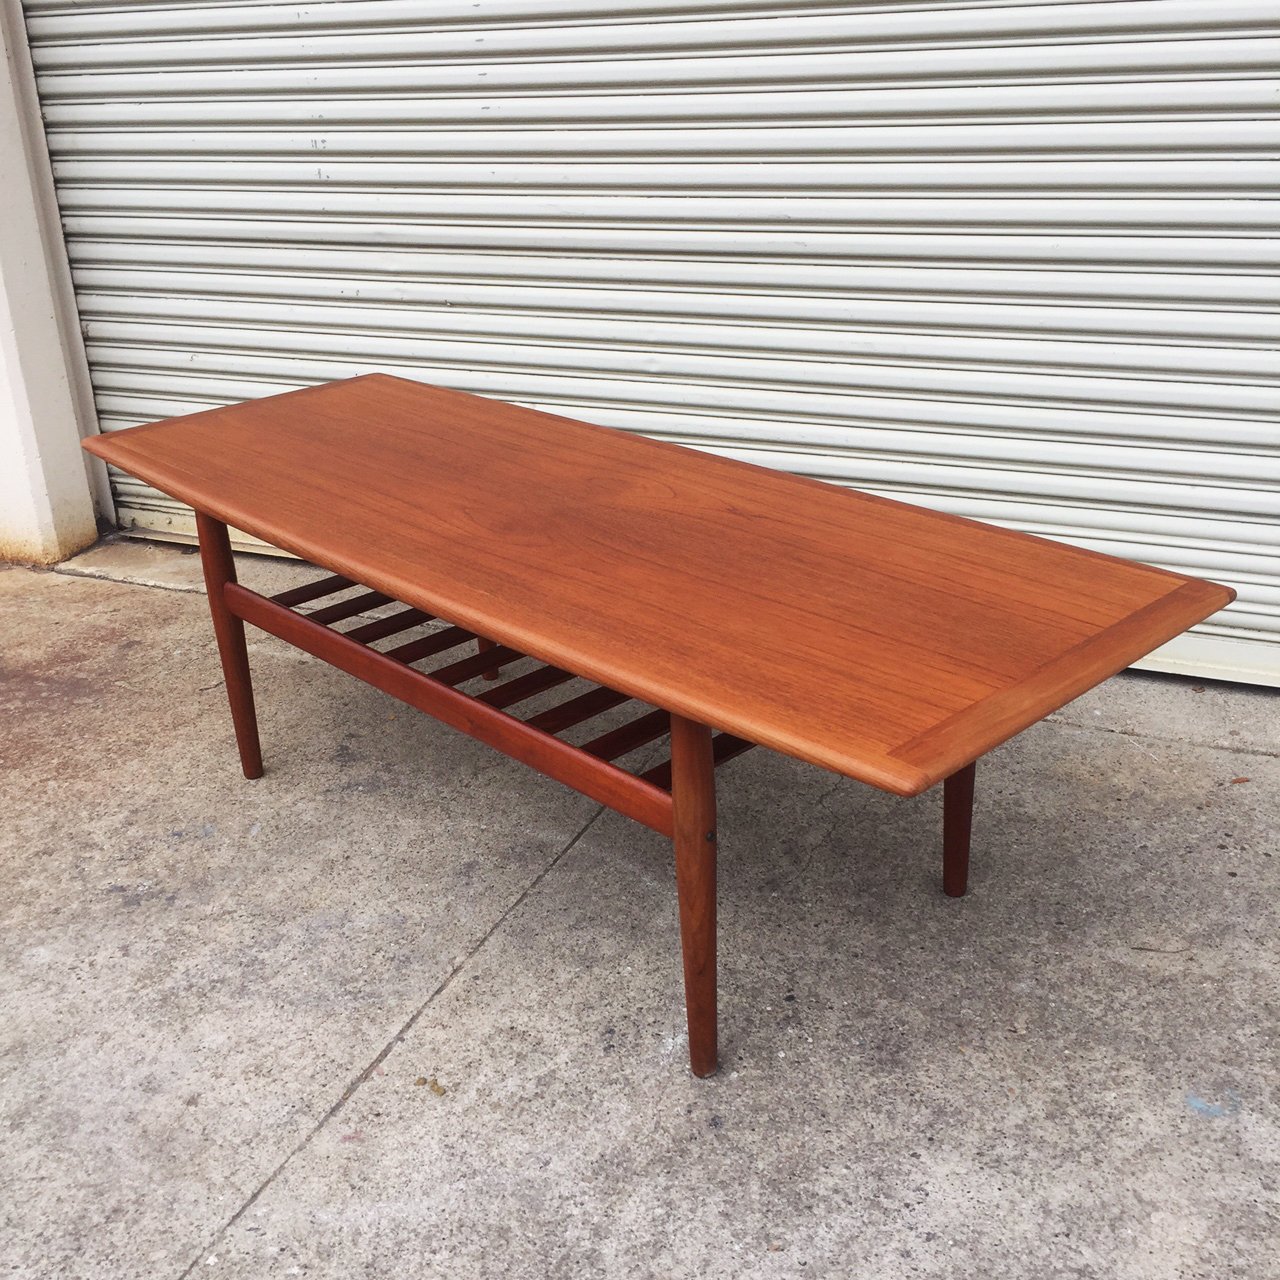 Teak Oil Coffee Table: Grete Jalk Teak Coffee Table